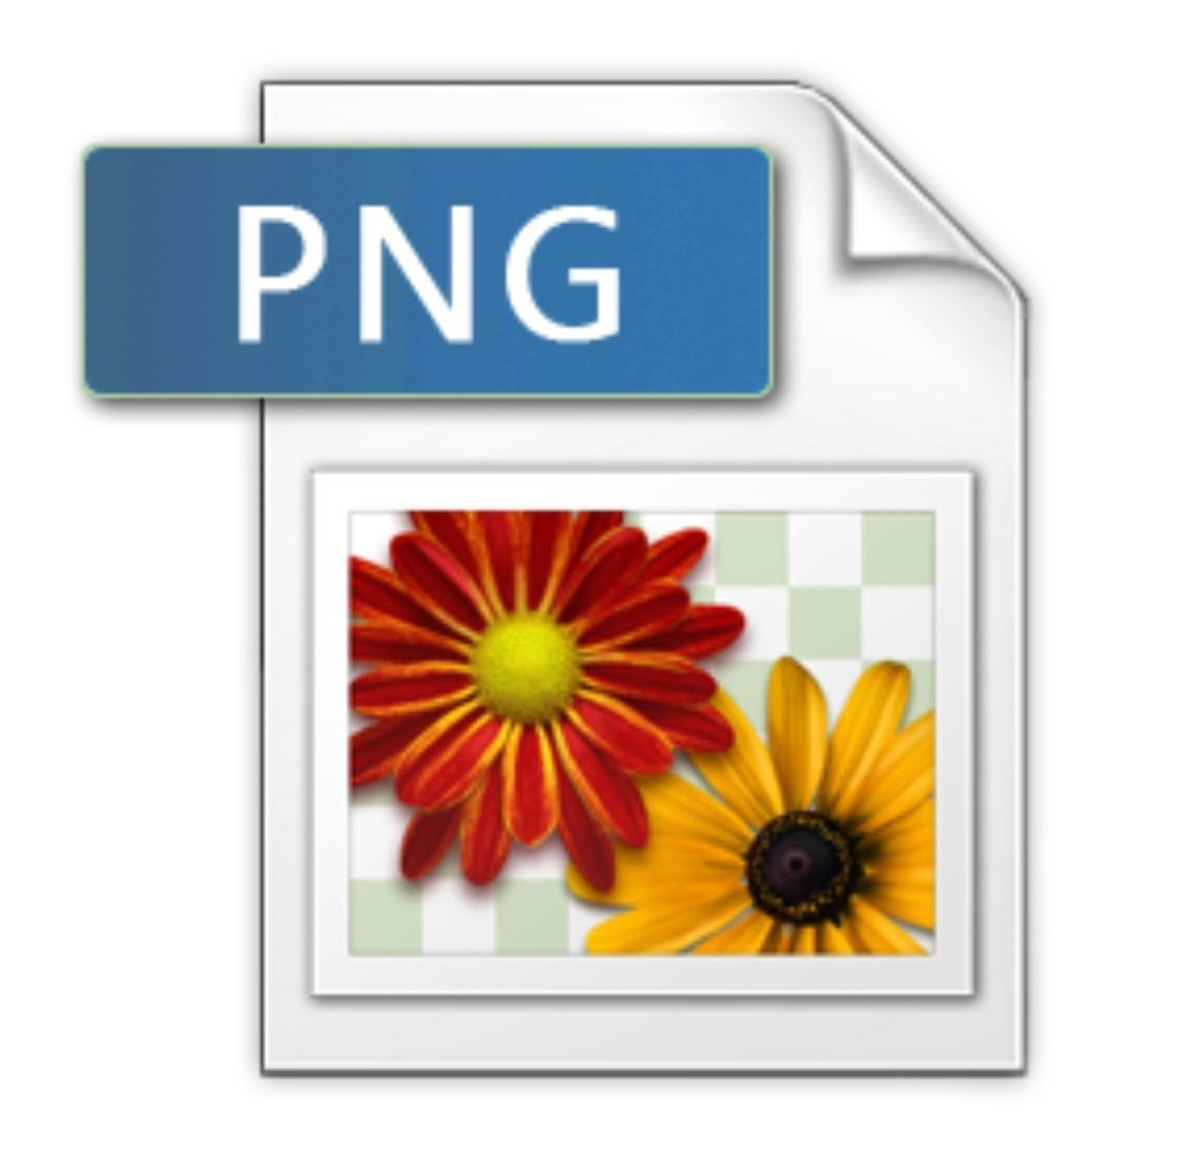 Making a Portable Network Graphics Format Image